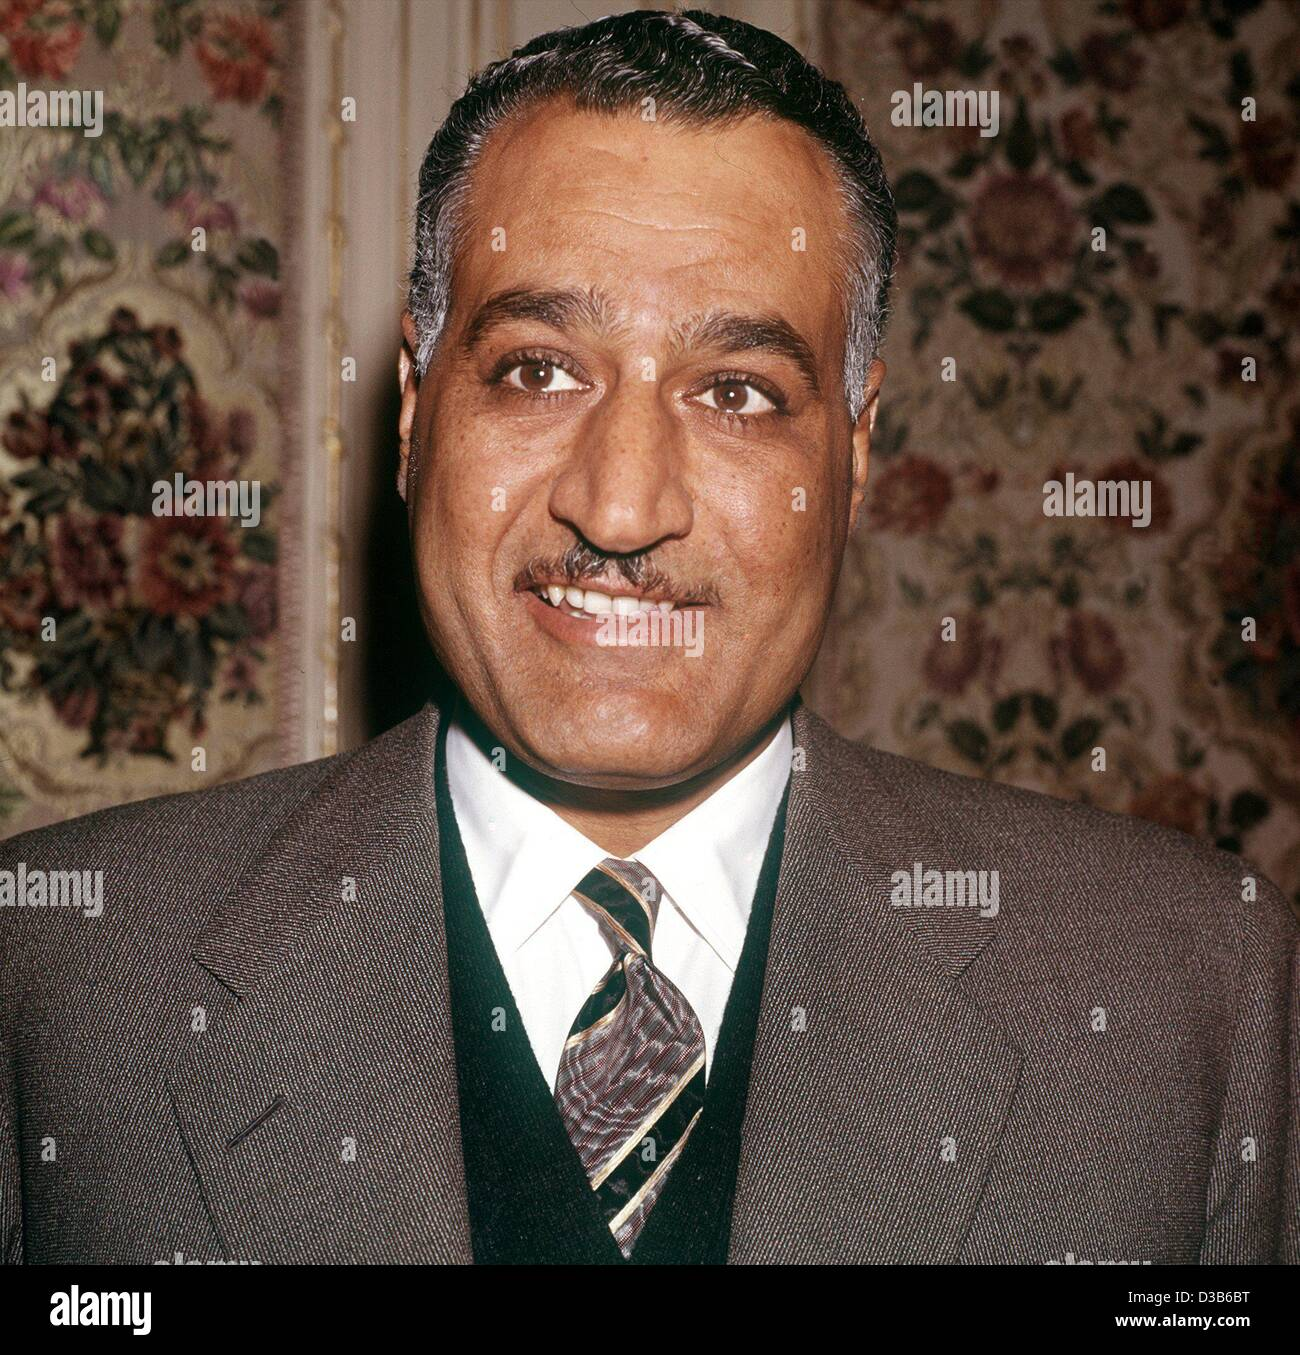 (dpa files) - An undated filer shows Egyptian Officer, politician and President Gamal Abdel Nasser (1918-1970). - Stock Image